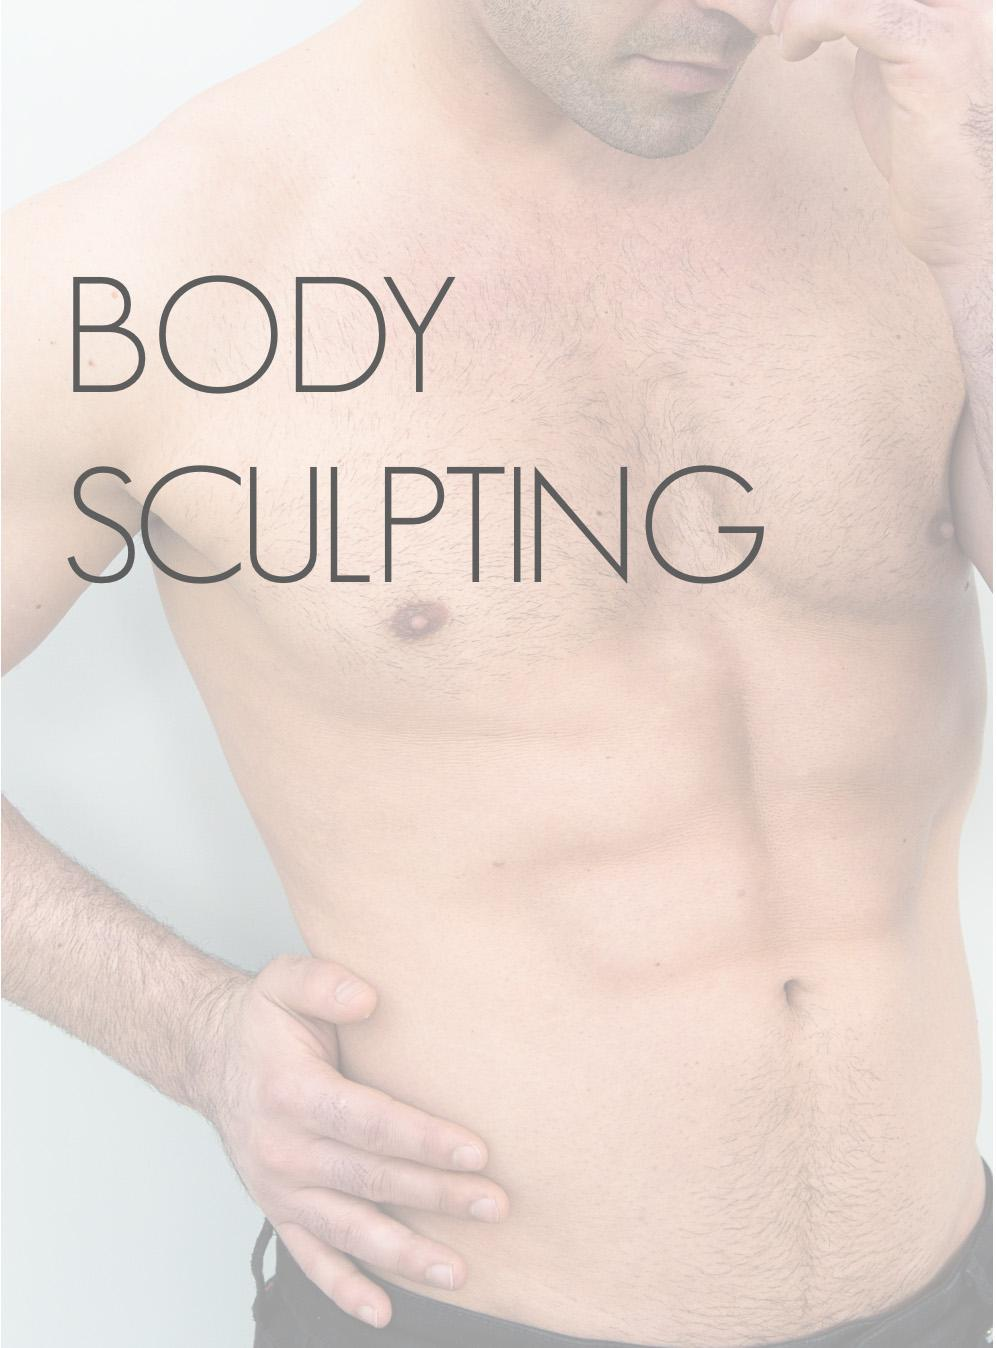 bodysculpting